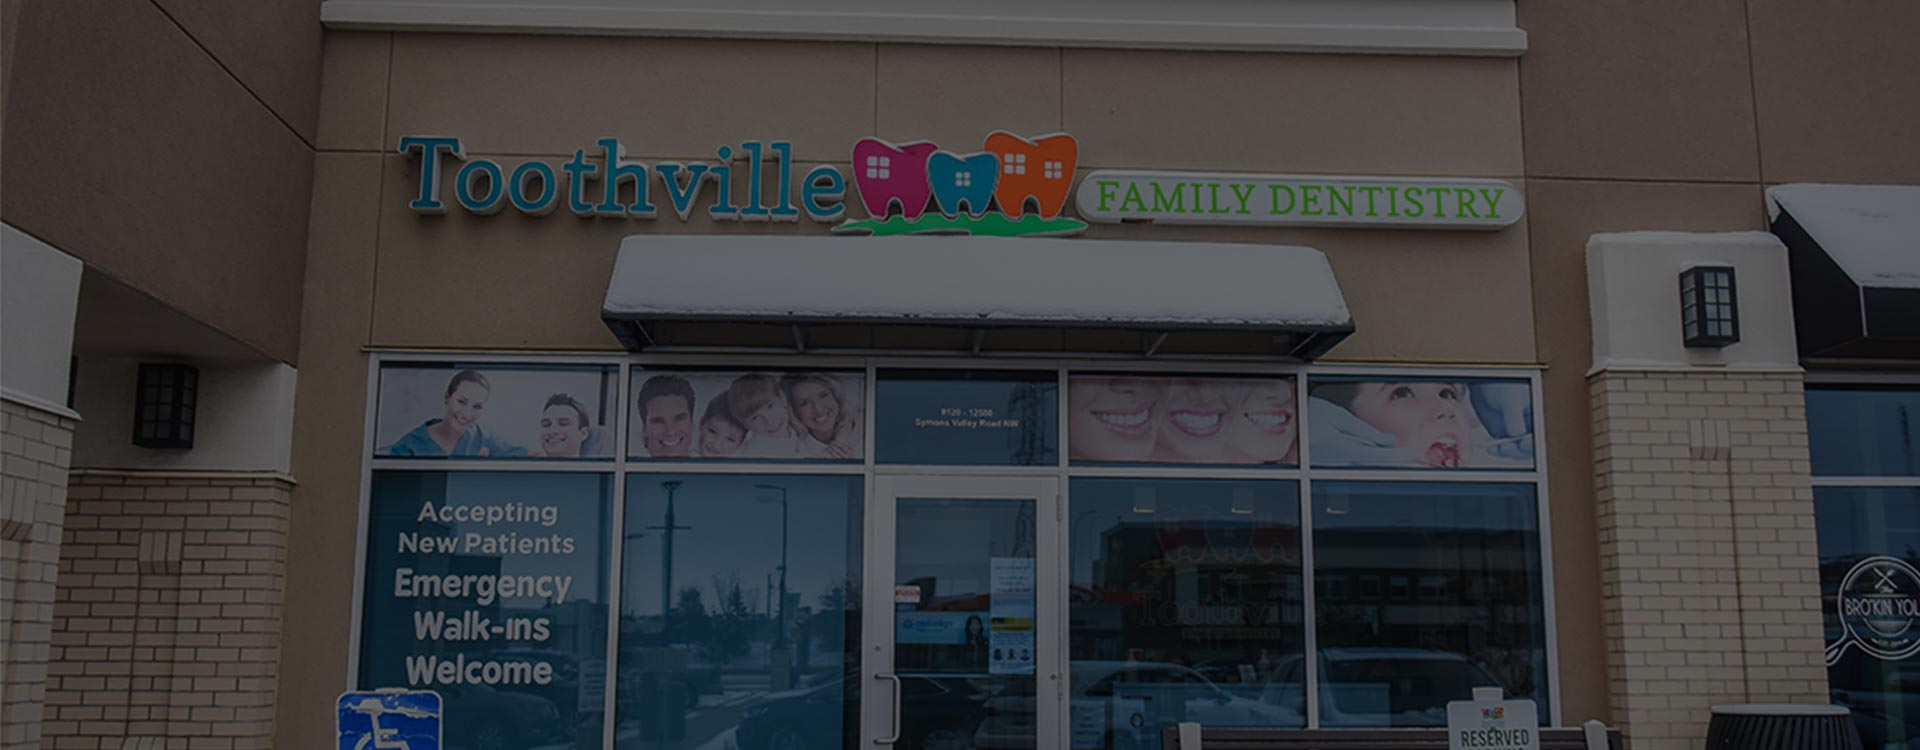 Building Exterior | Toothville Family Dentistry | NW Calgary | General Dentist